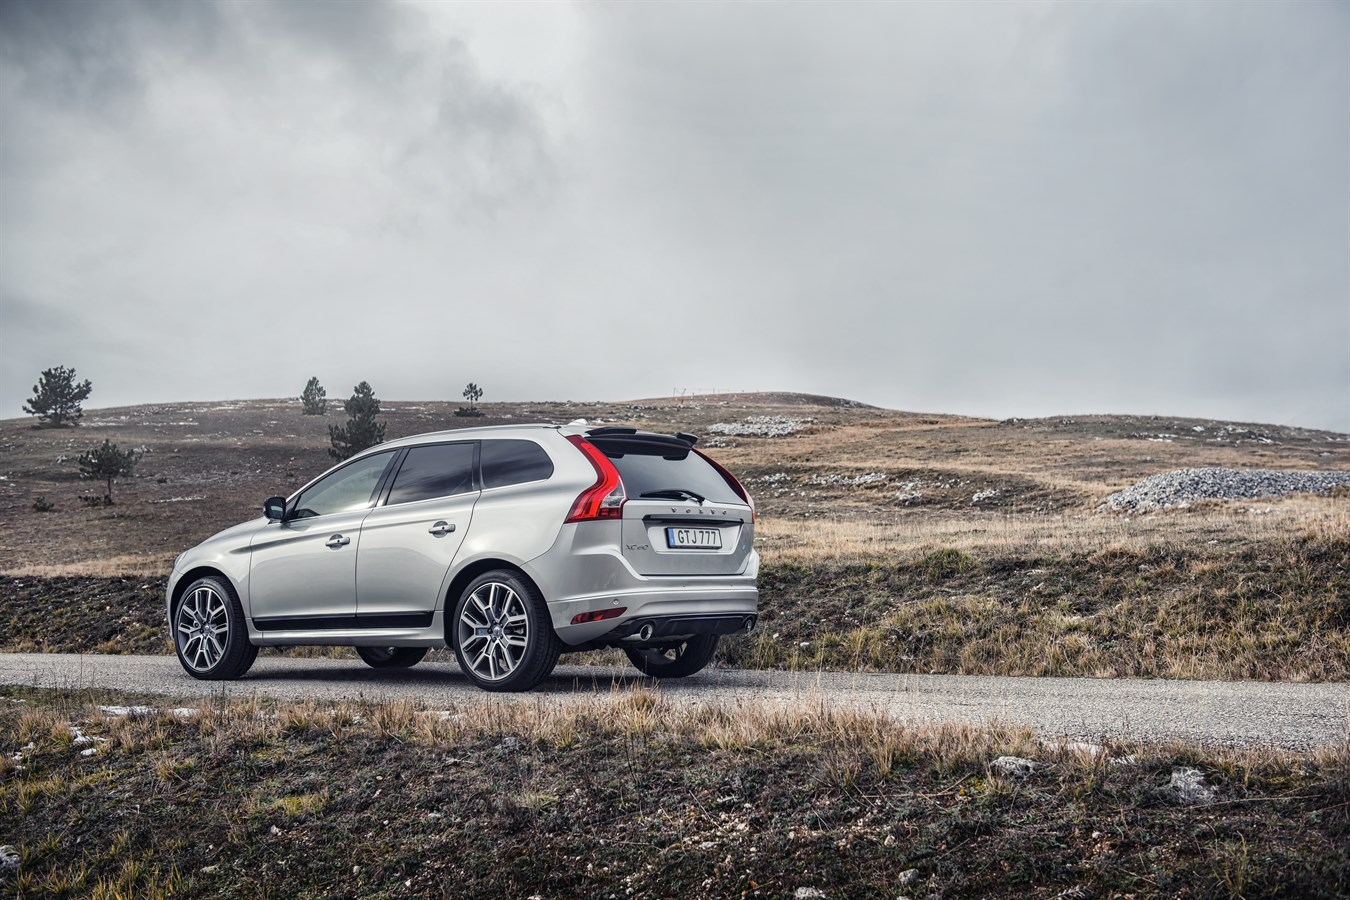 Introducing Polestar Performance Parts For Volvo Cars Car Group Global Media Newsroom